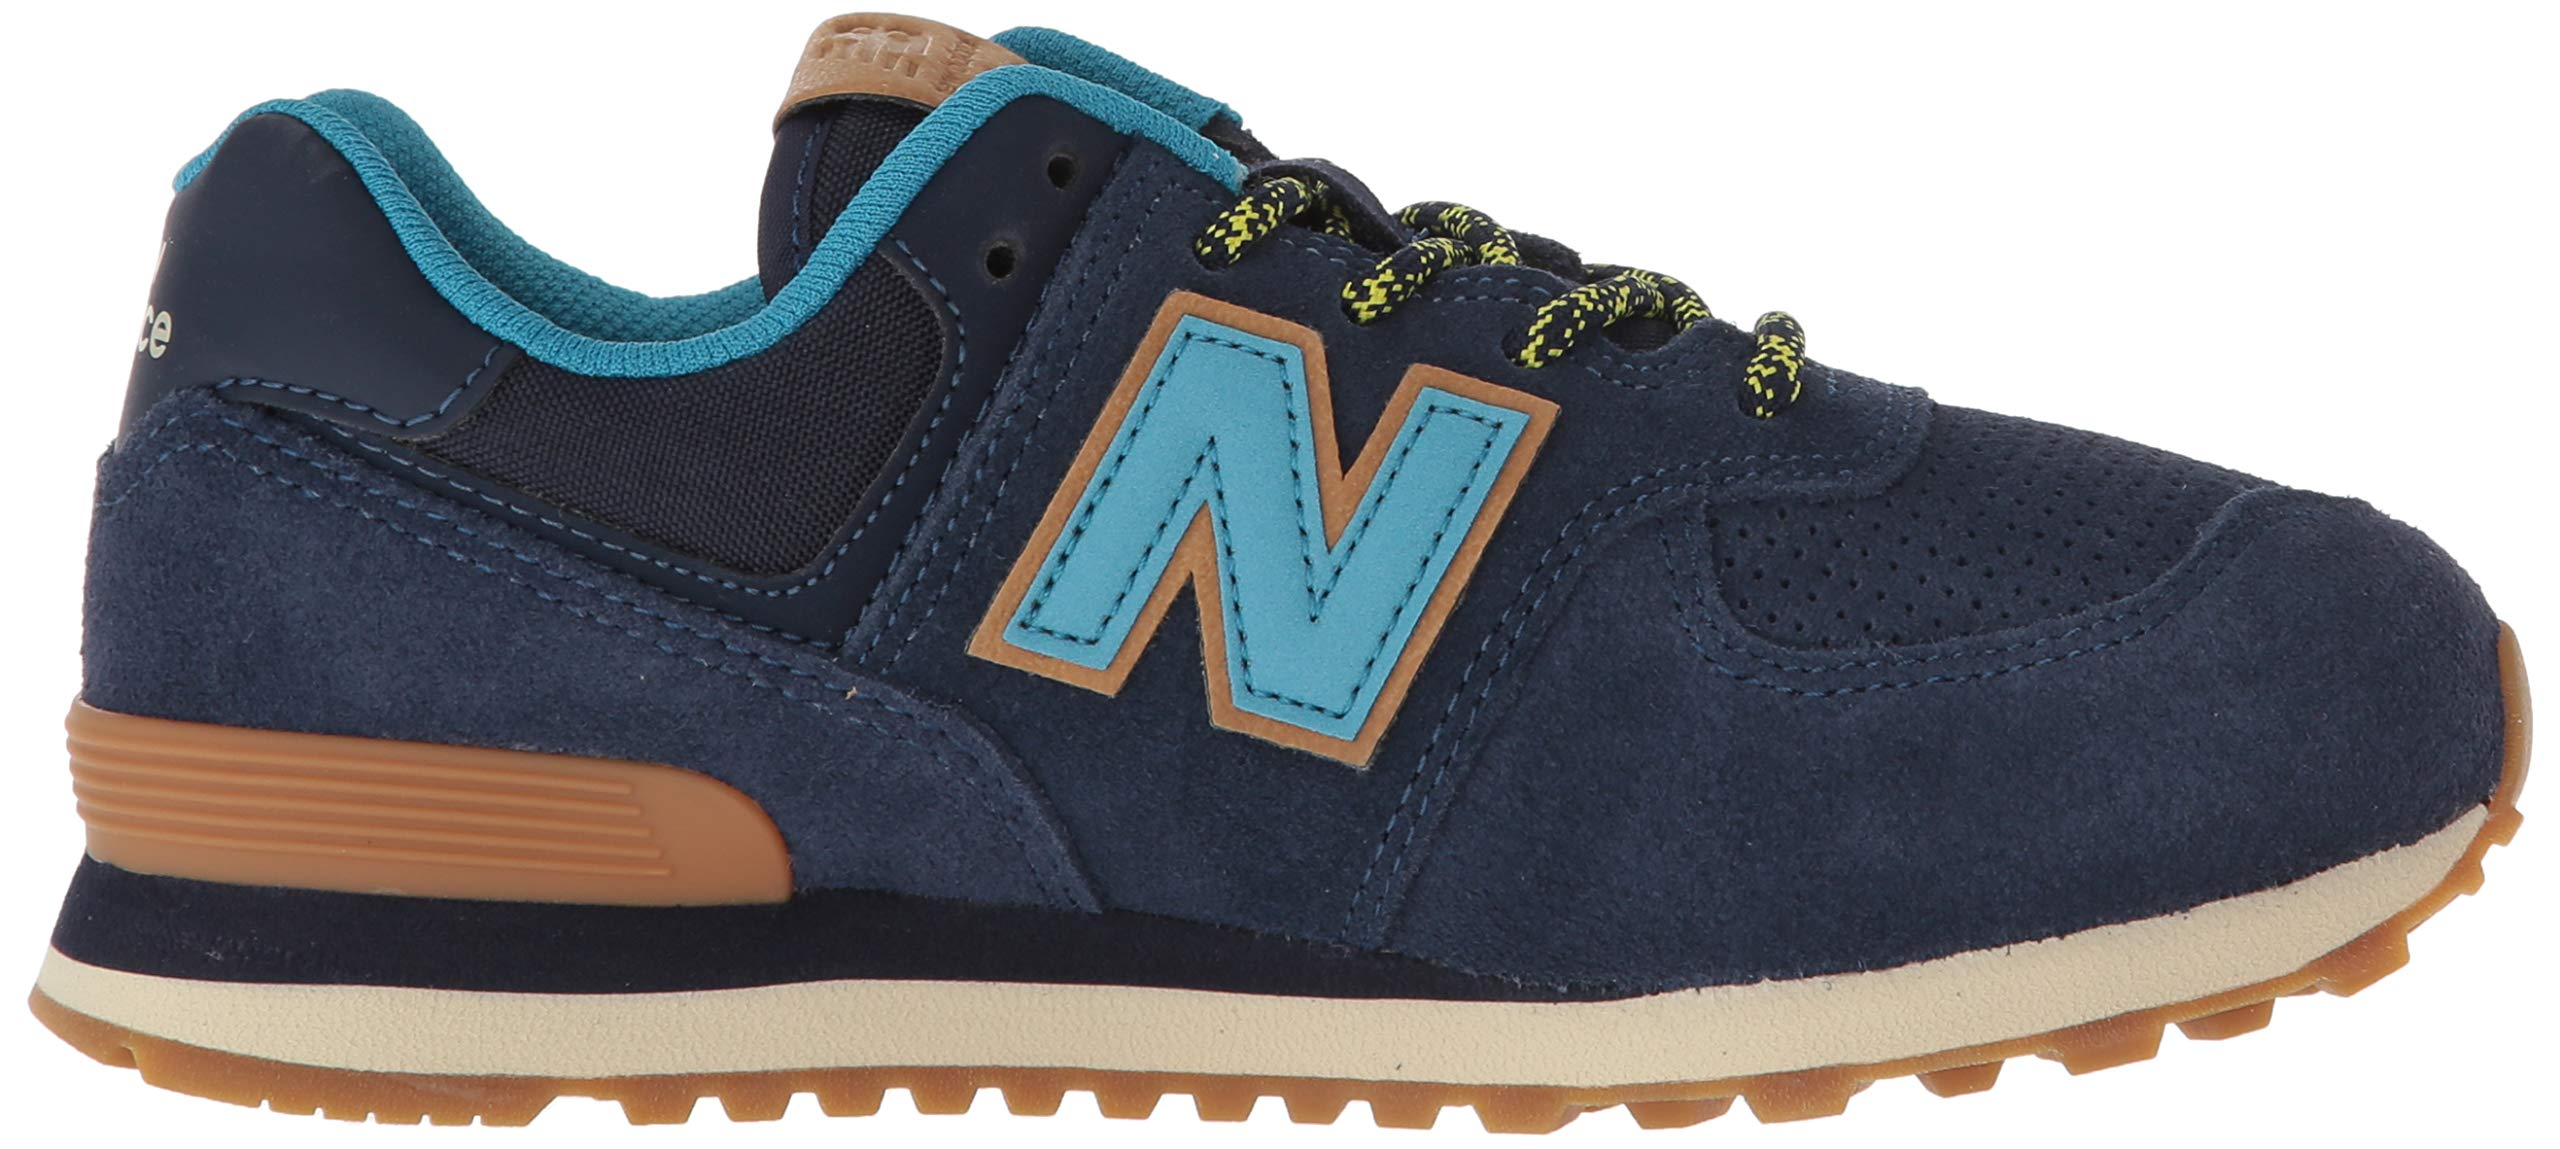 New Balance Boys' Iconic 574 Sneaker Pigment/Cadet 10 M US Toddler by New Balance (Image #6)